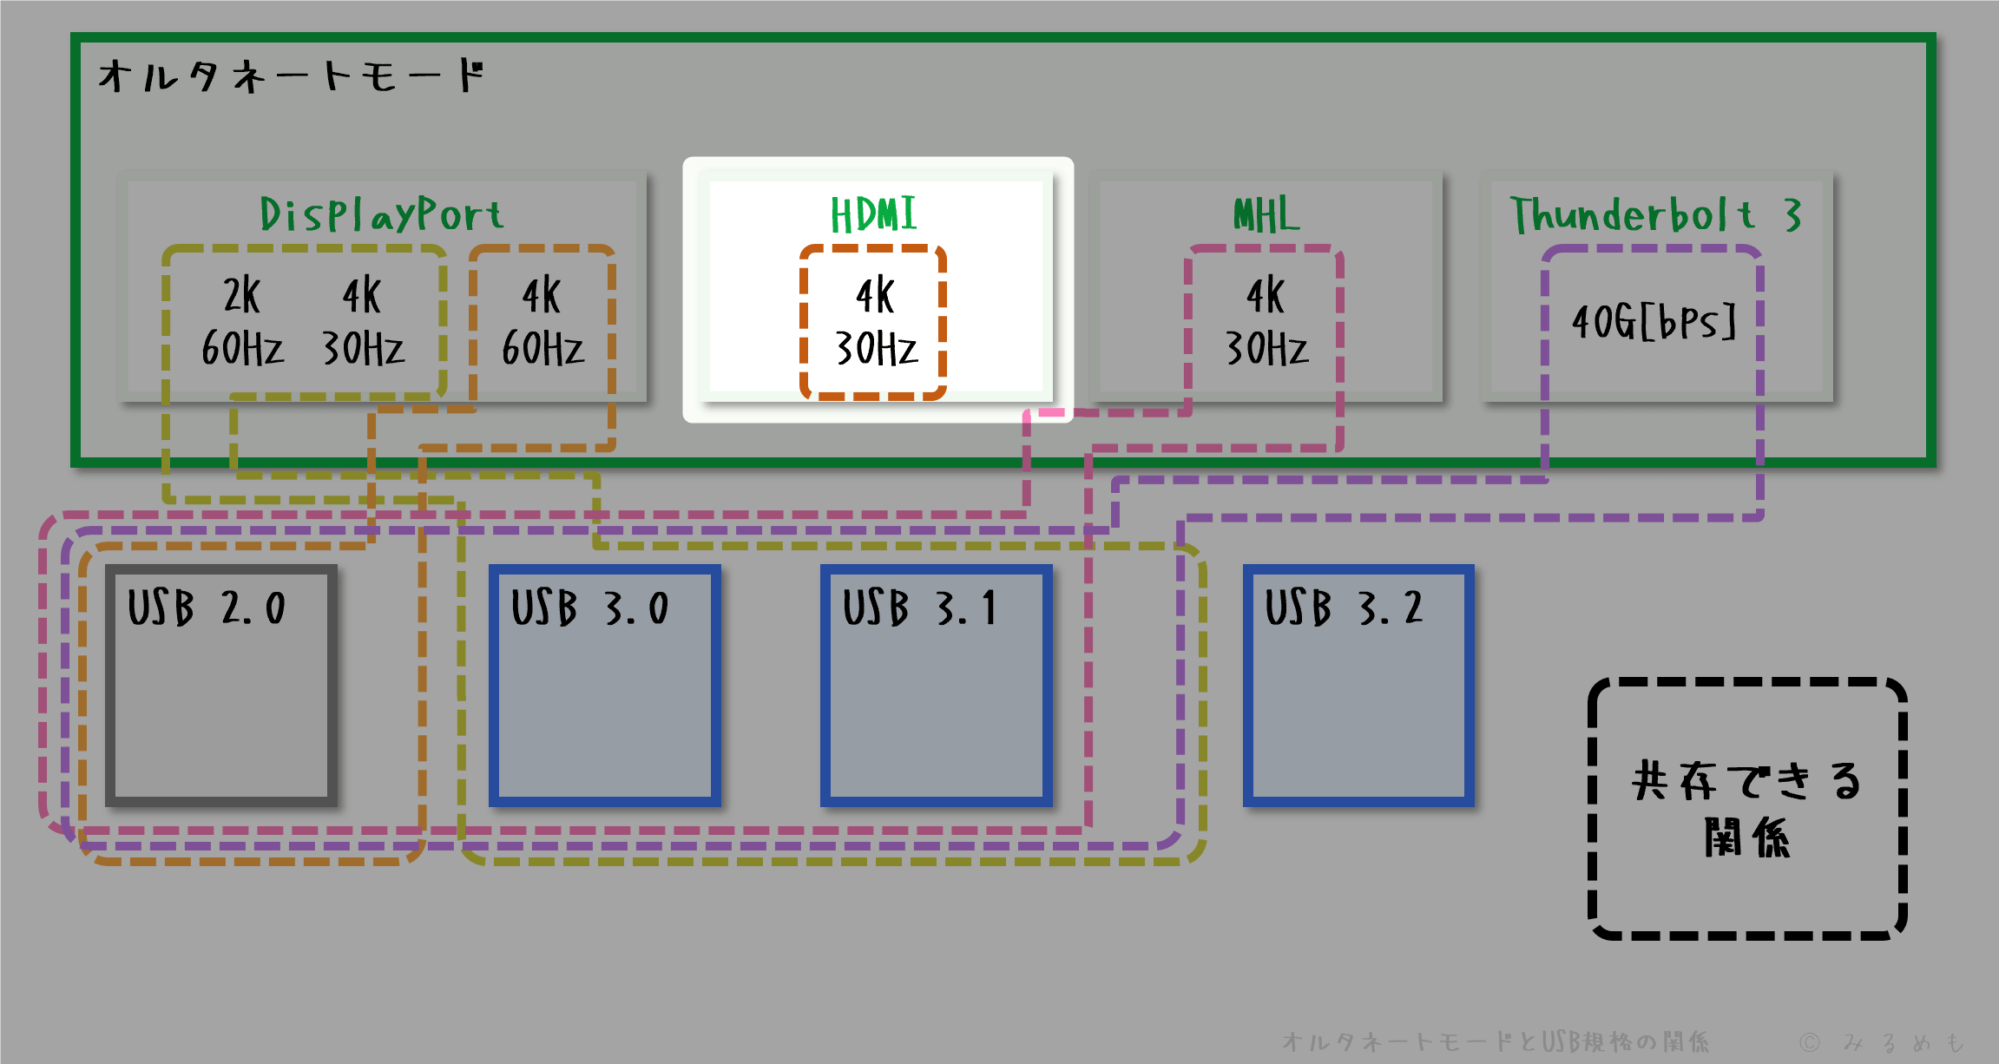 hdmi-is-not-connect-usb-by-alternate-mode